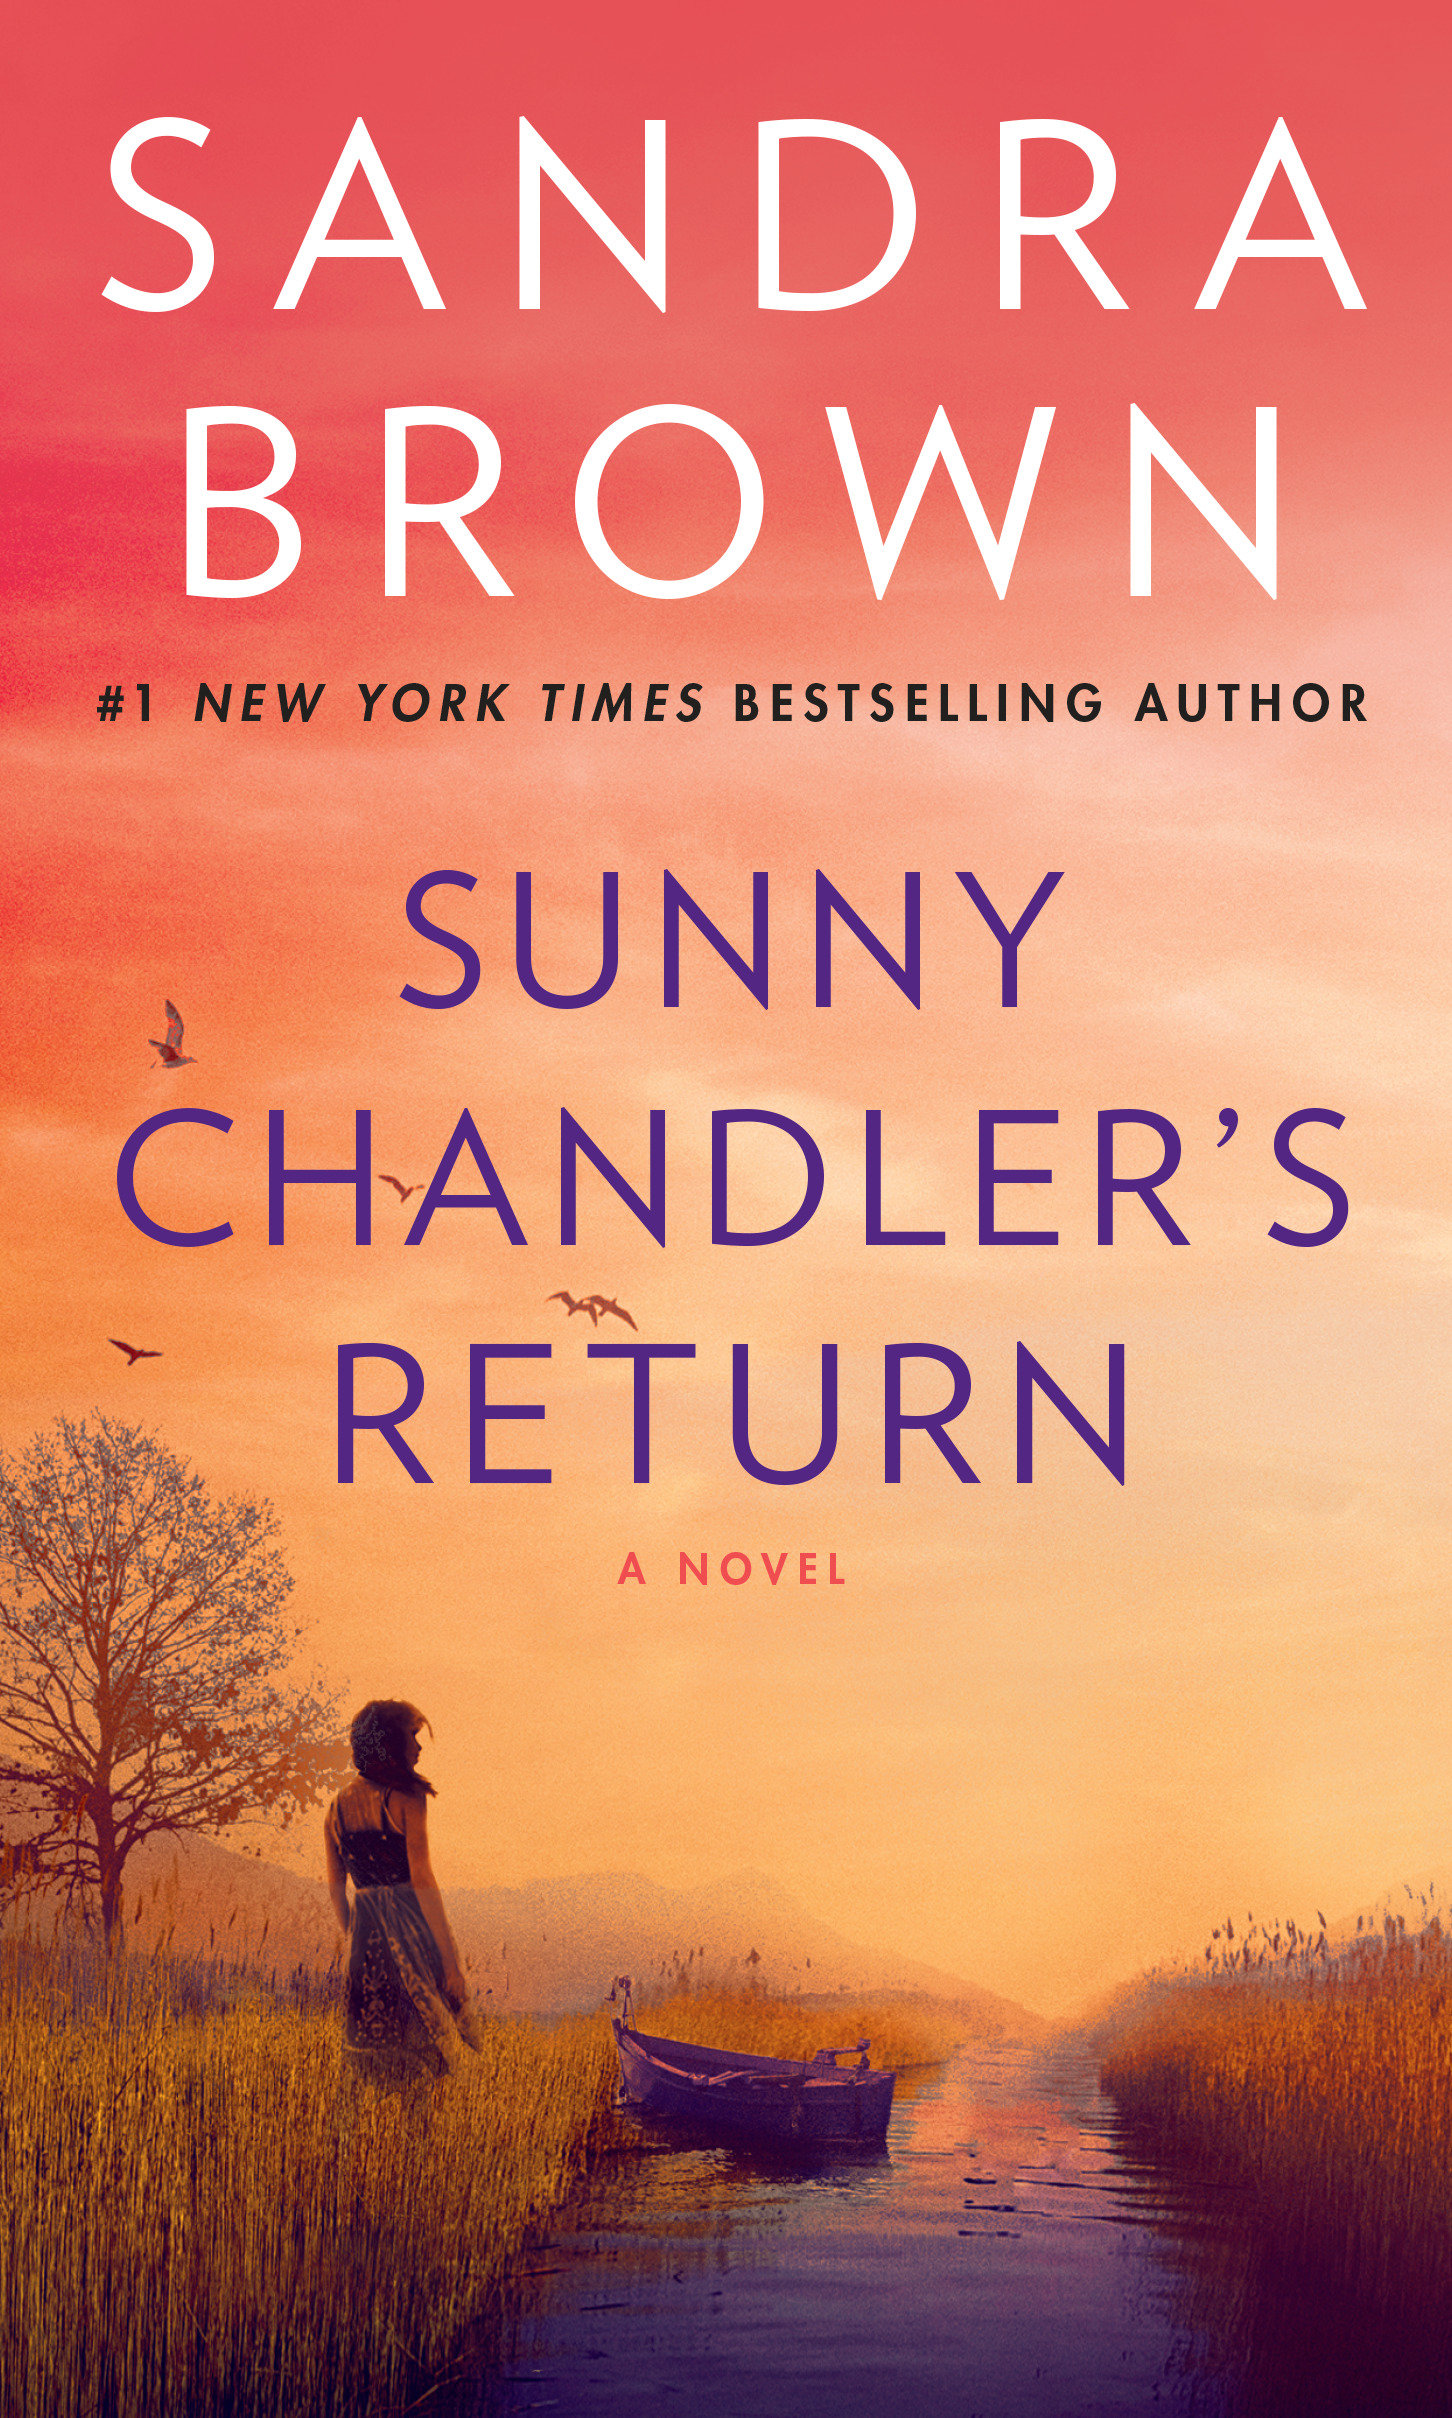 Sunny Chandler's return cover image